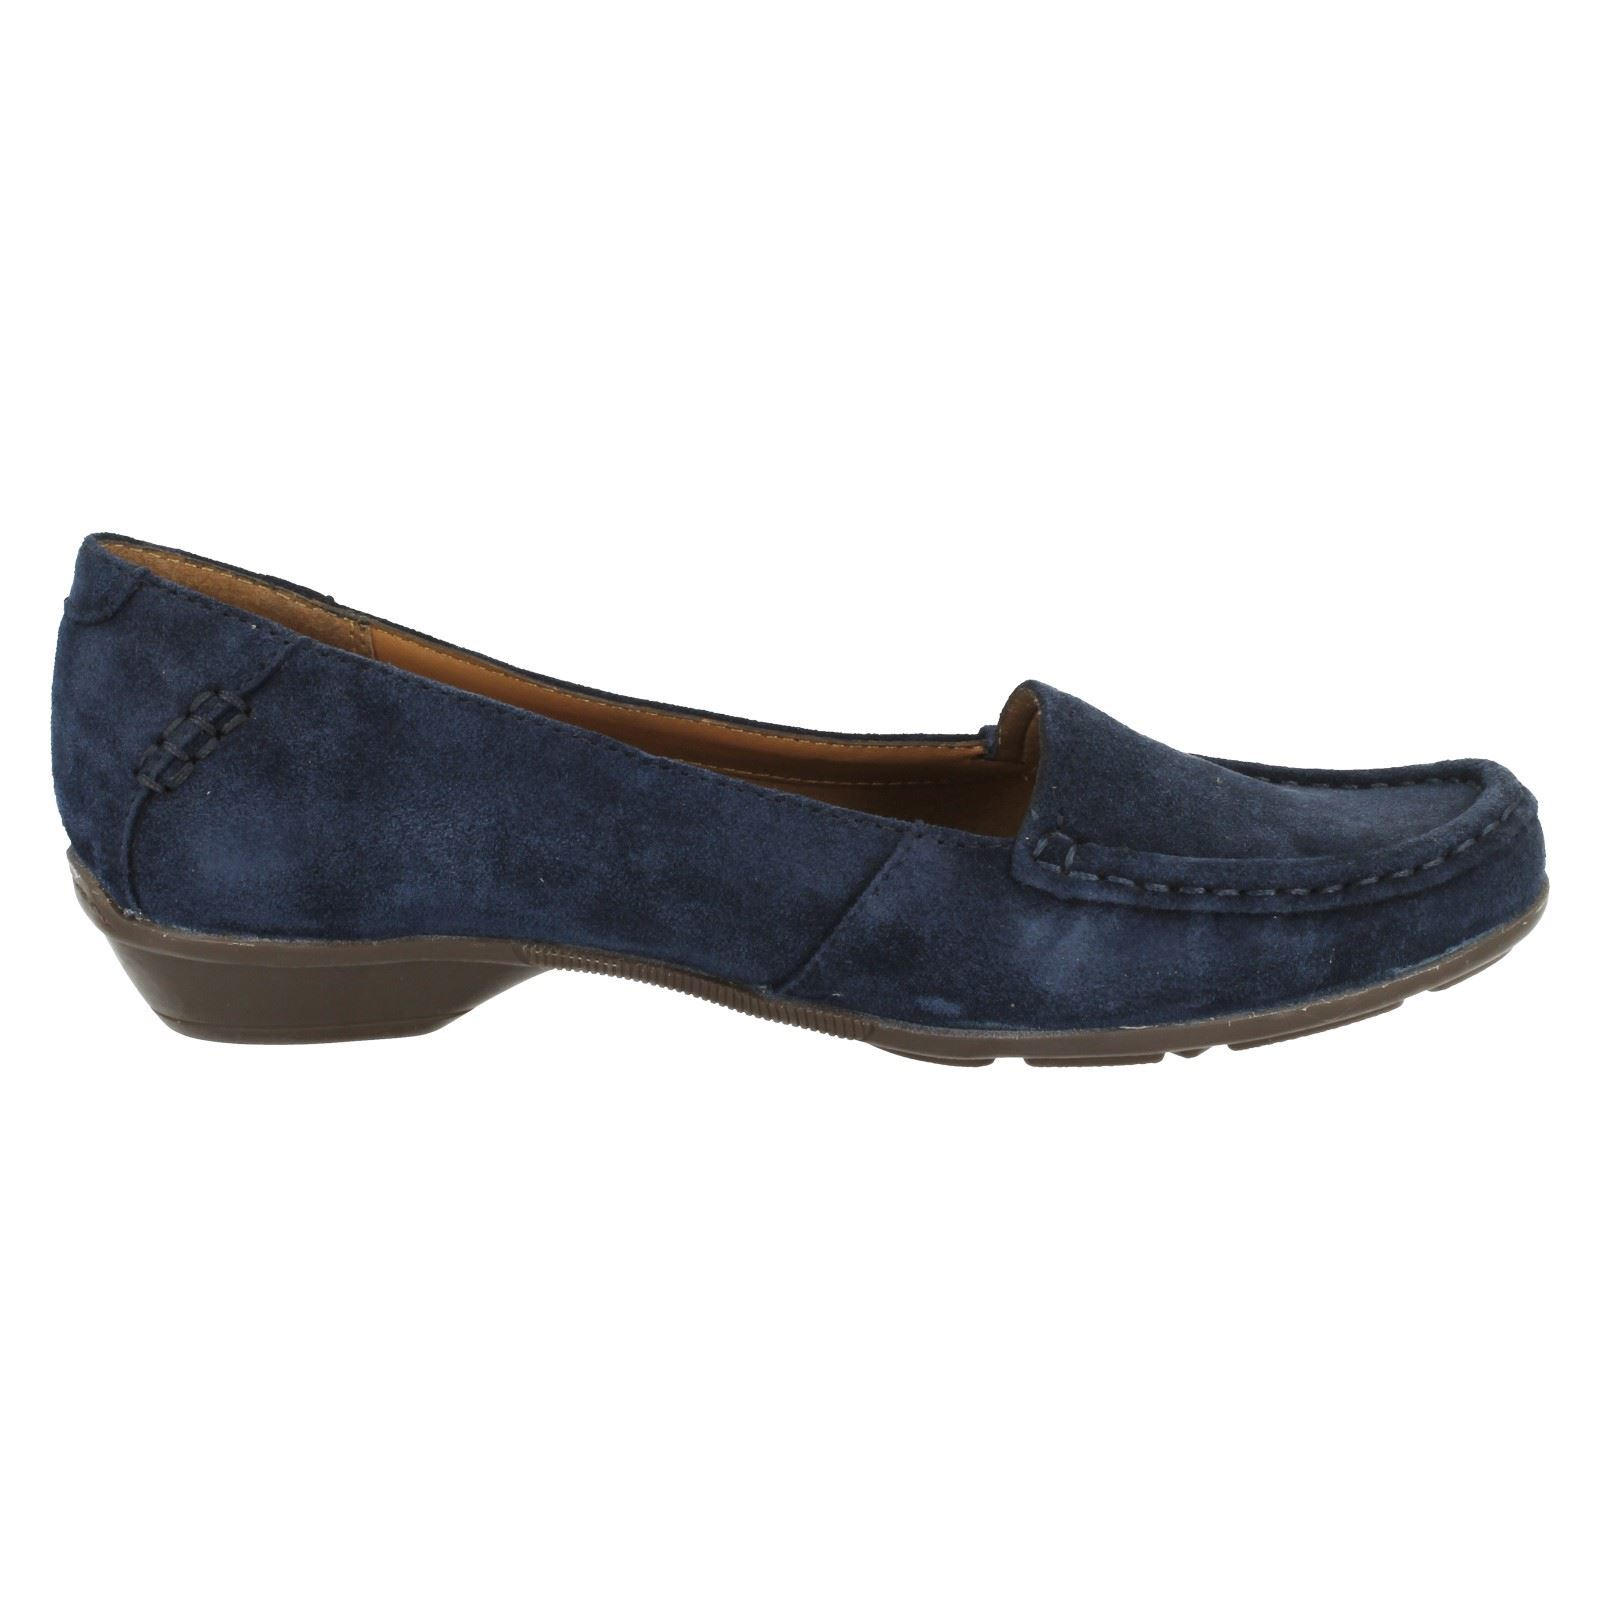 fc828c7bd61 Ladies Clarks Loafer Heeled Shoes Gilded Opal Navy UK 6 D. About this  product. Picture 1 of 8  Picture 2 of 8  Picture 3 of 8  Picture 4 of 8